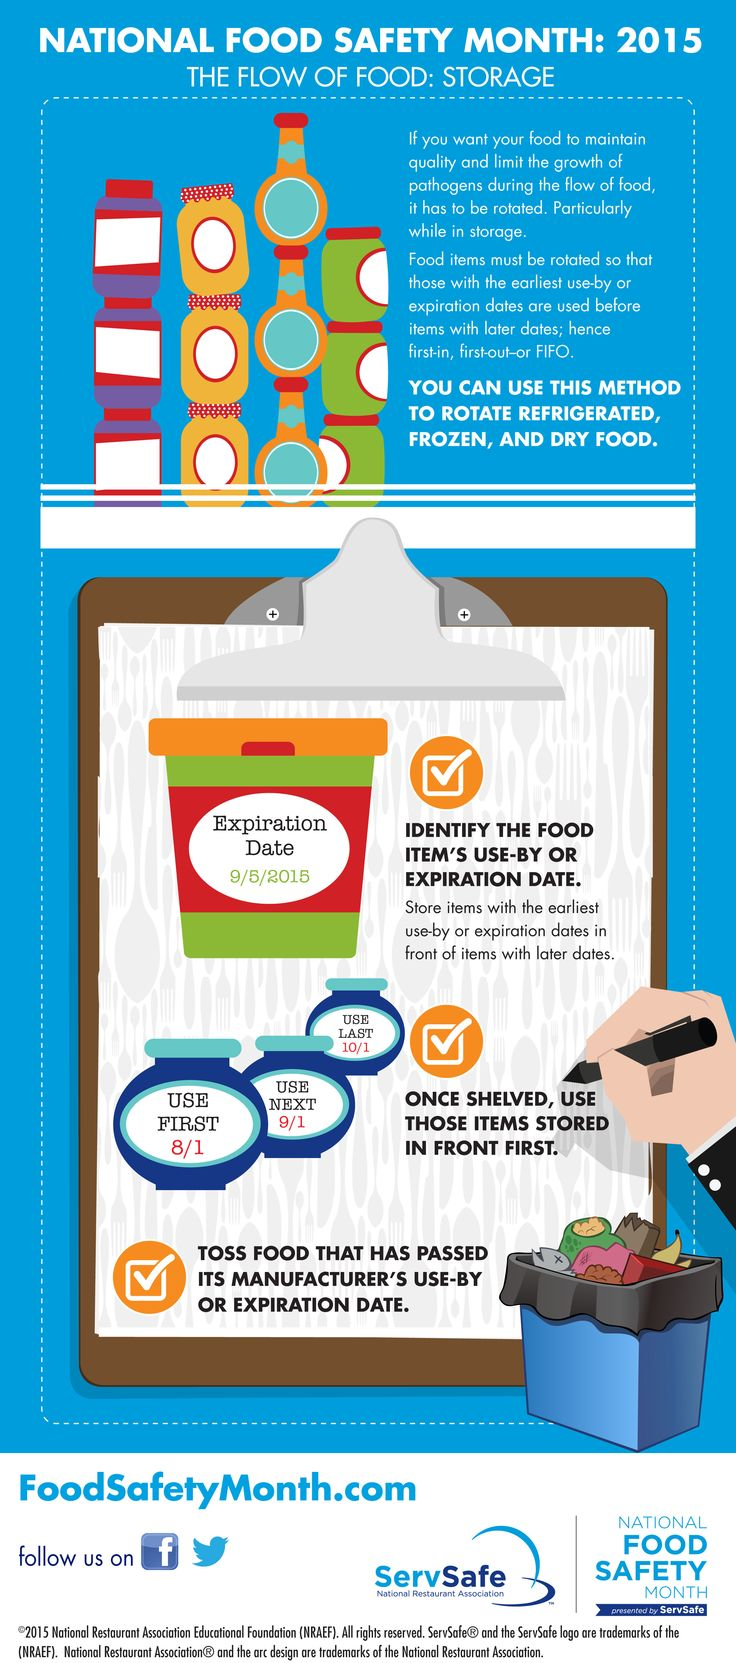 17 best images about basic food safety hand washing national food safety month 2015 infographic about food storage safety foodsafetymonth letitflow